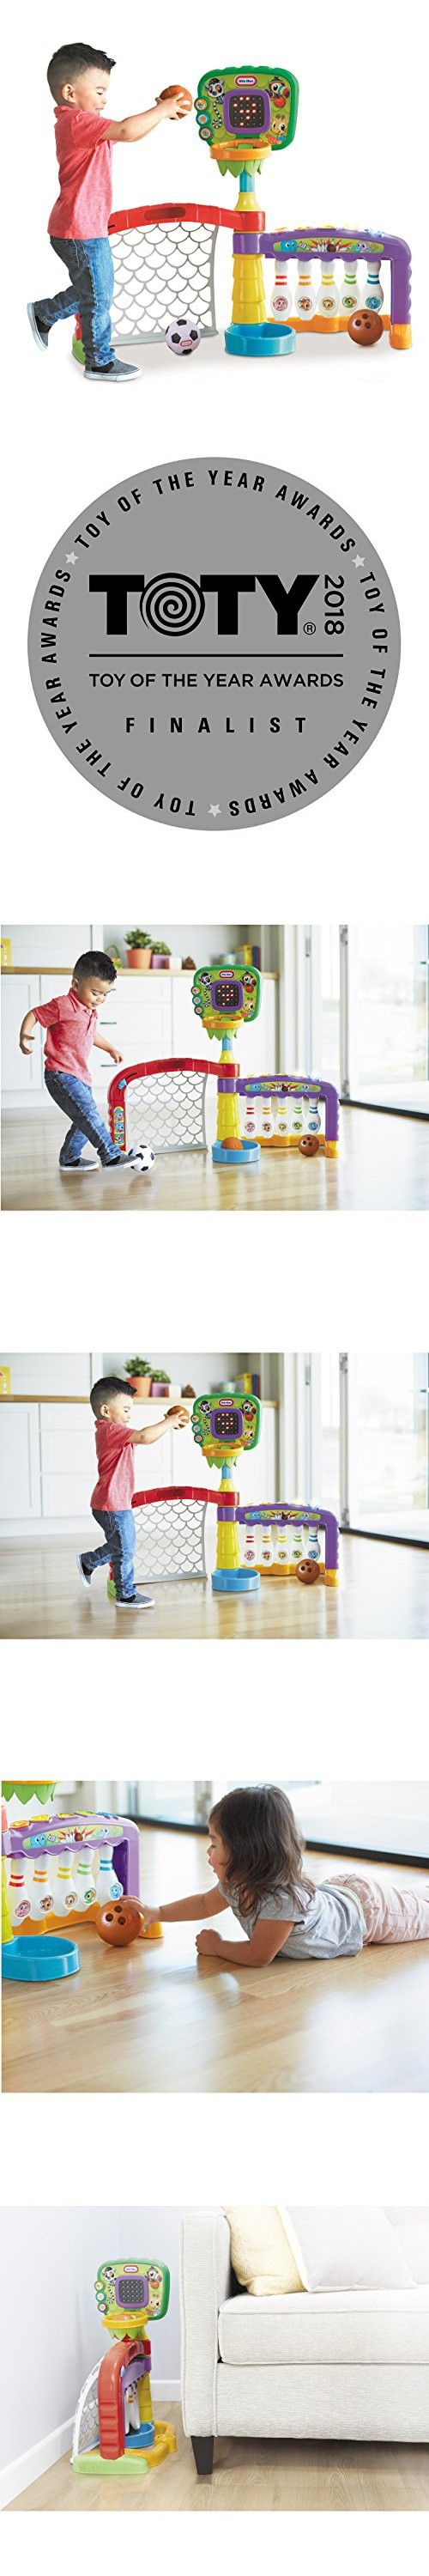 Little Tikes 3in1 Sports Zone Baby Toy, Infant Toy